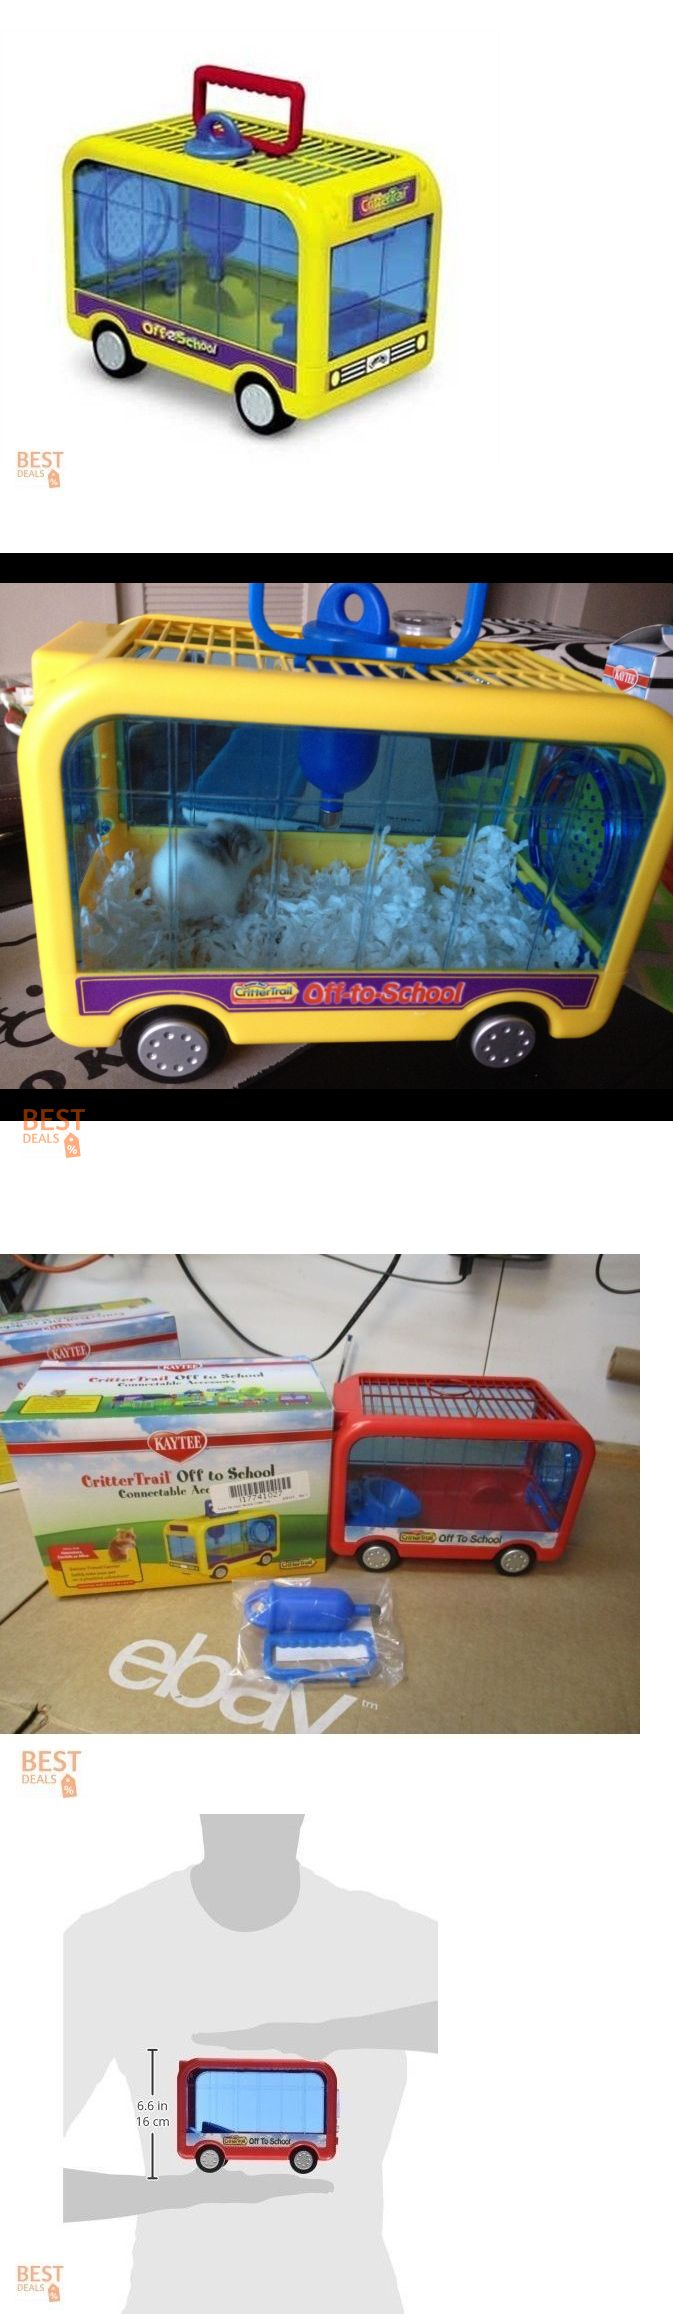 Carriers and Crates 26702: Plastic Hamster House Small Animal Carrier Portable Pet Mouse Cage Travel Crate -> BUY IT NOW ONLY: $34.99 on eBay!